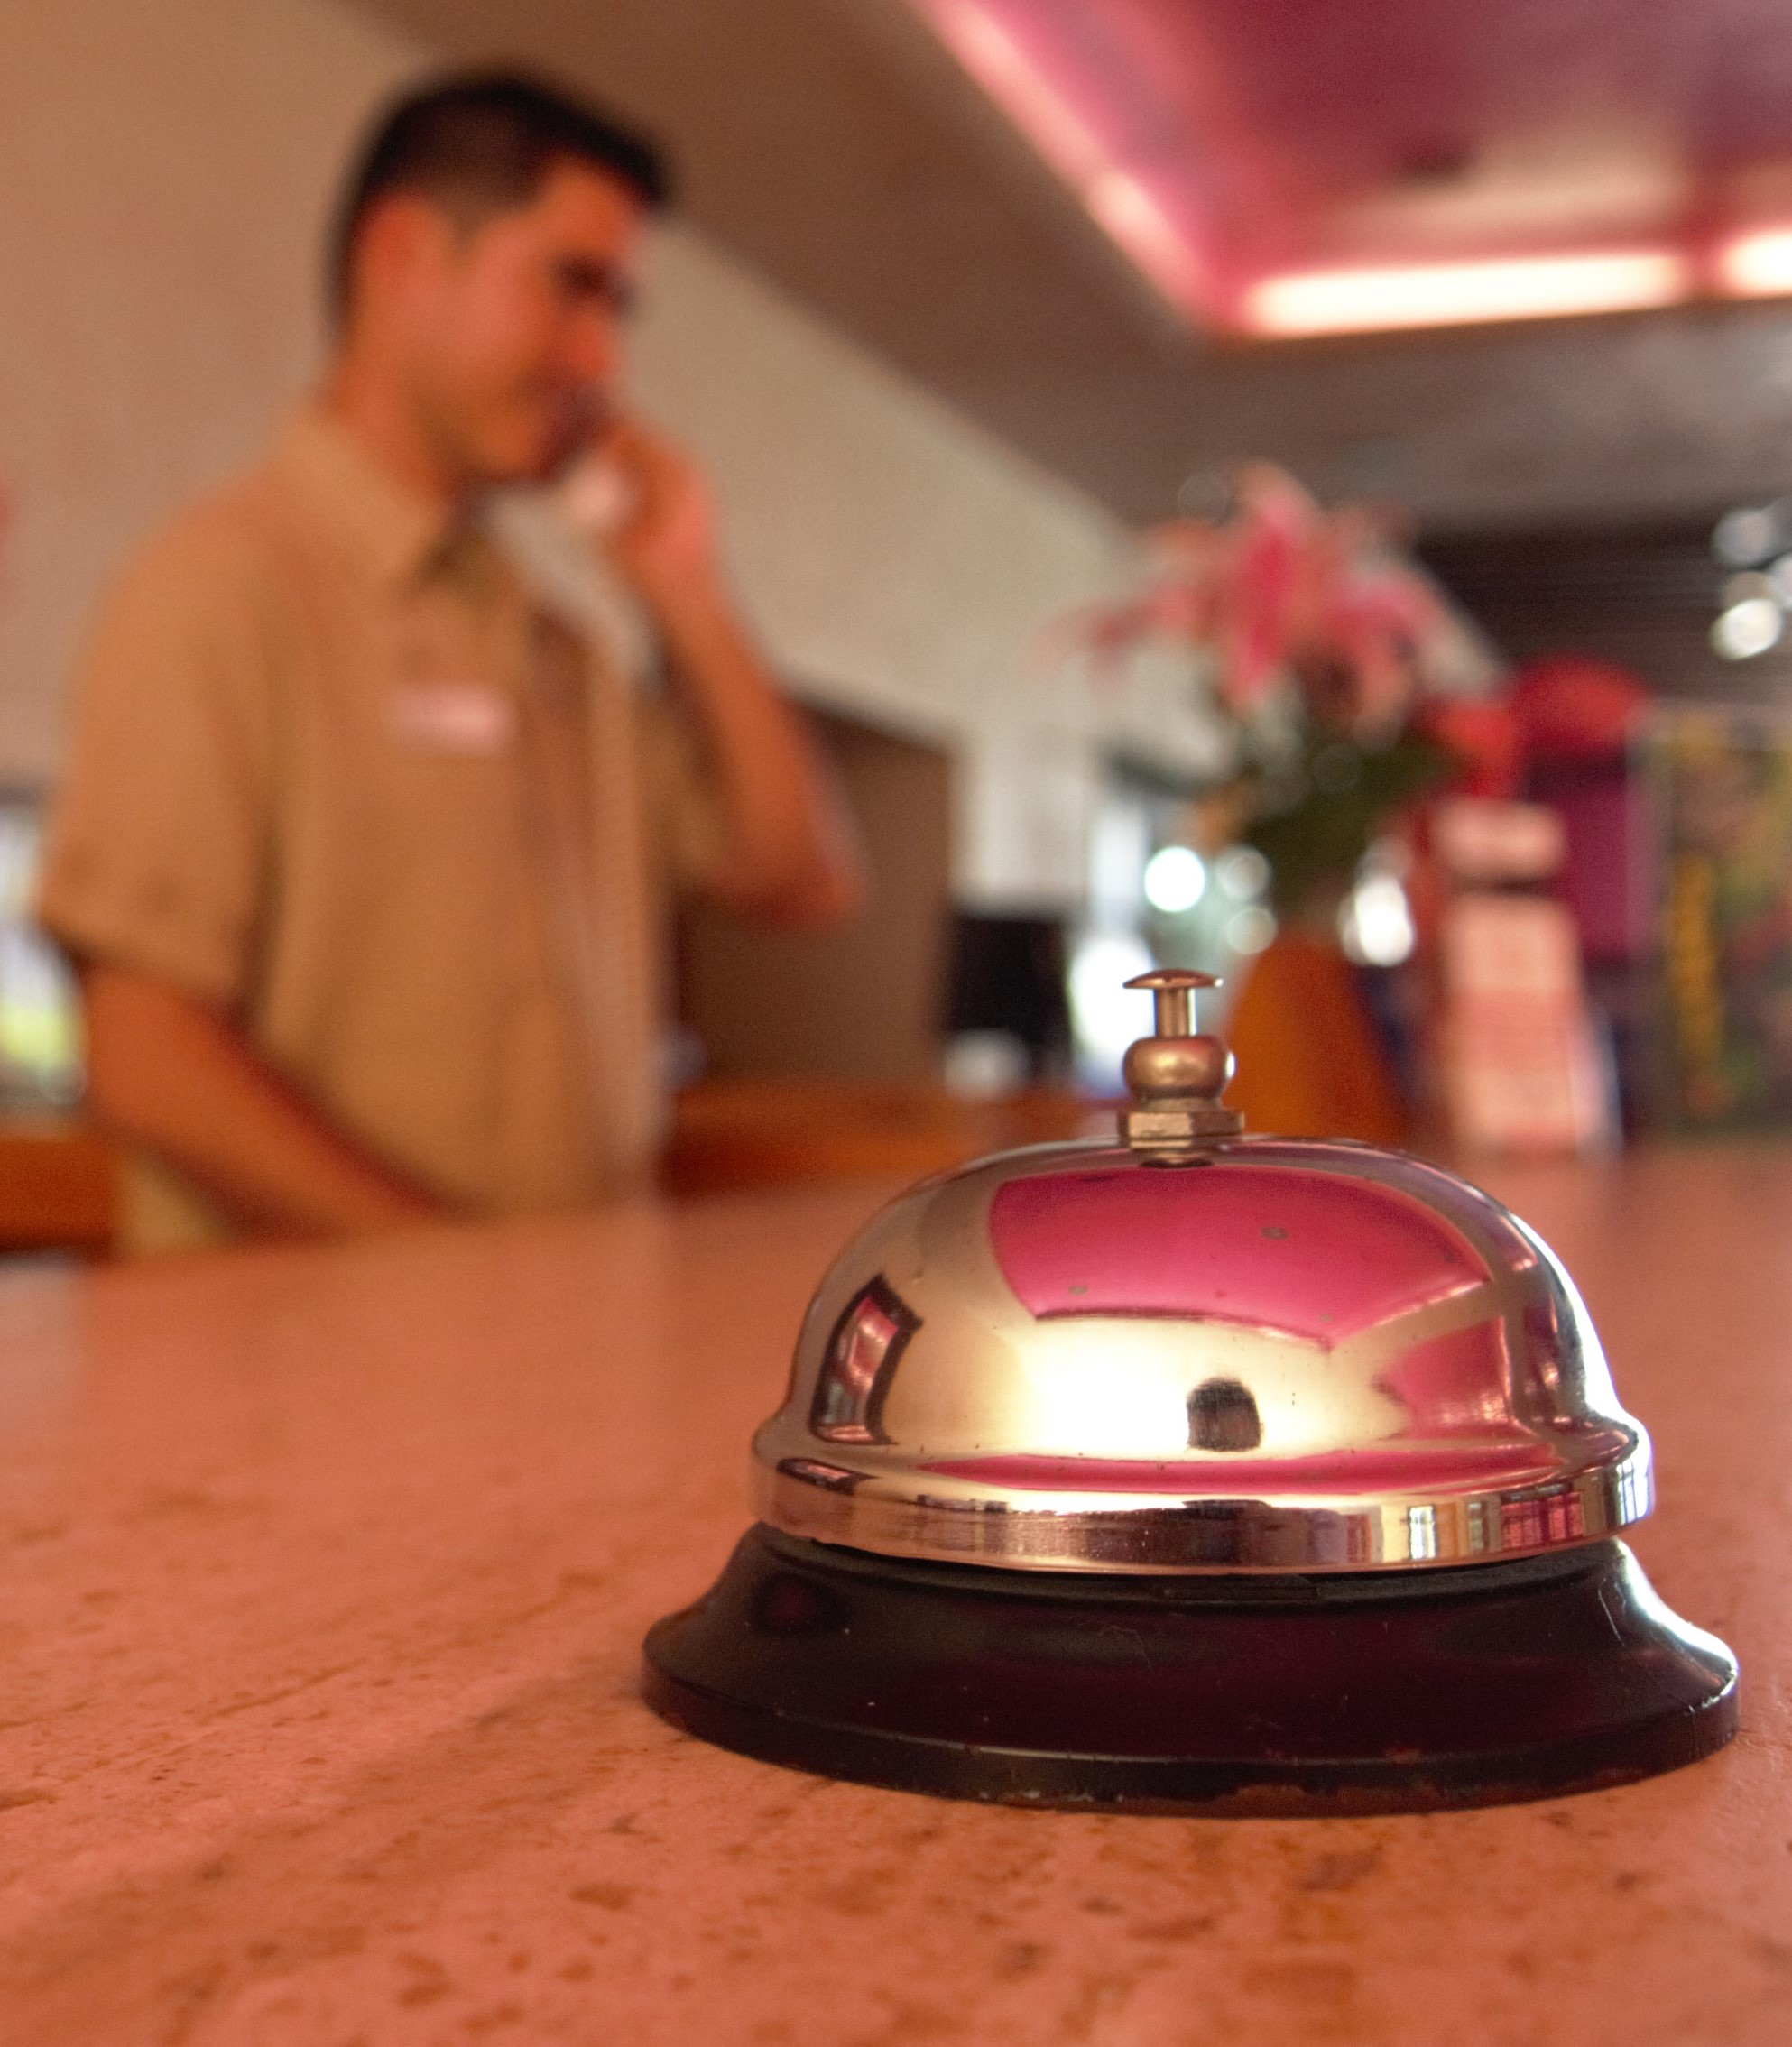 service bell at resort counter